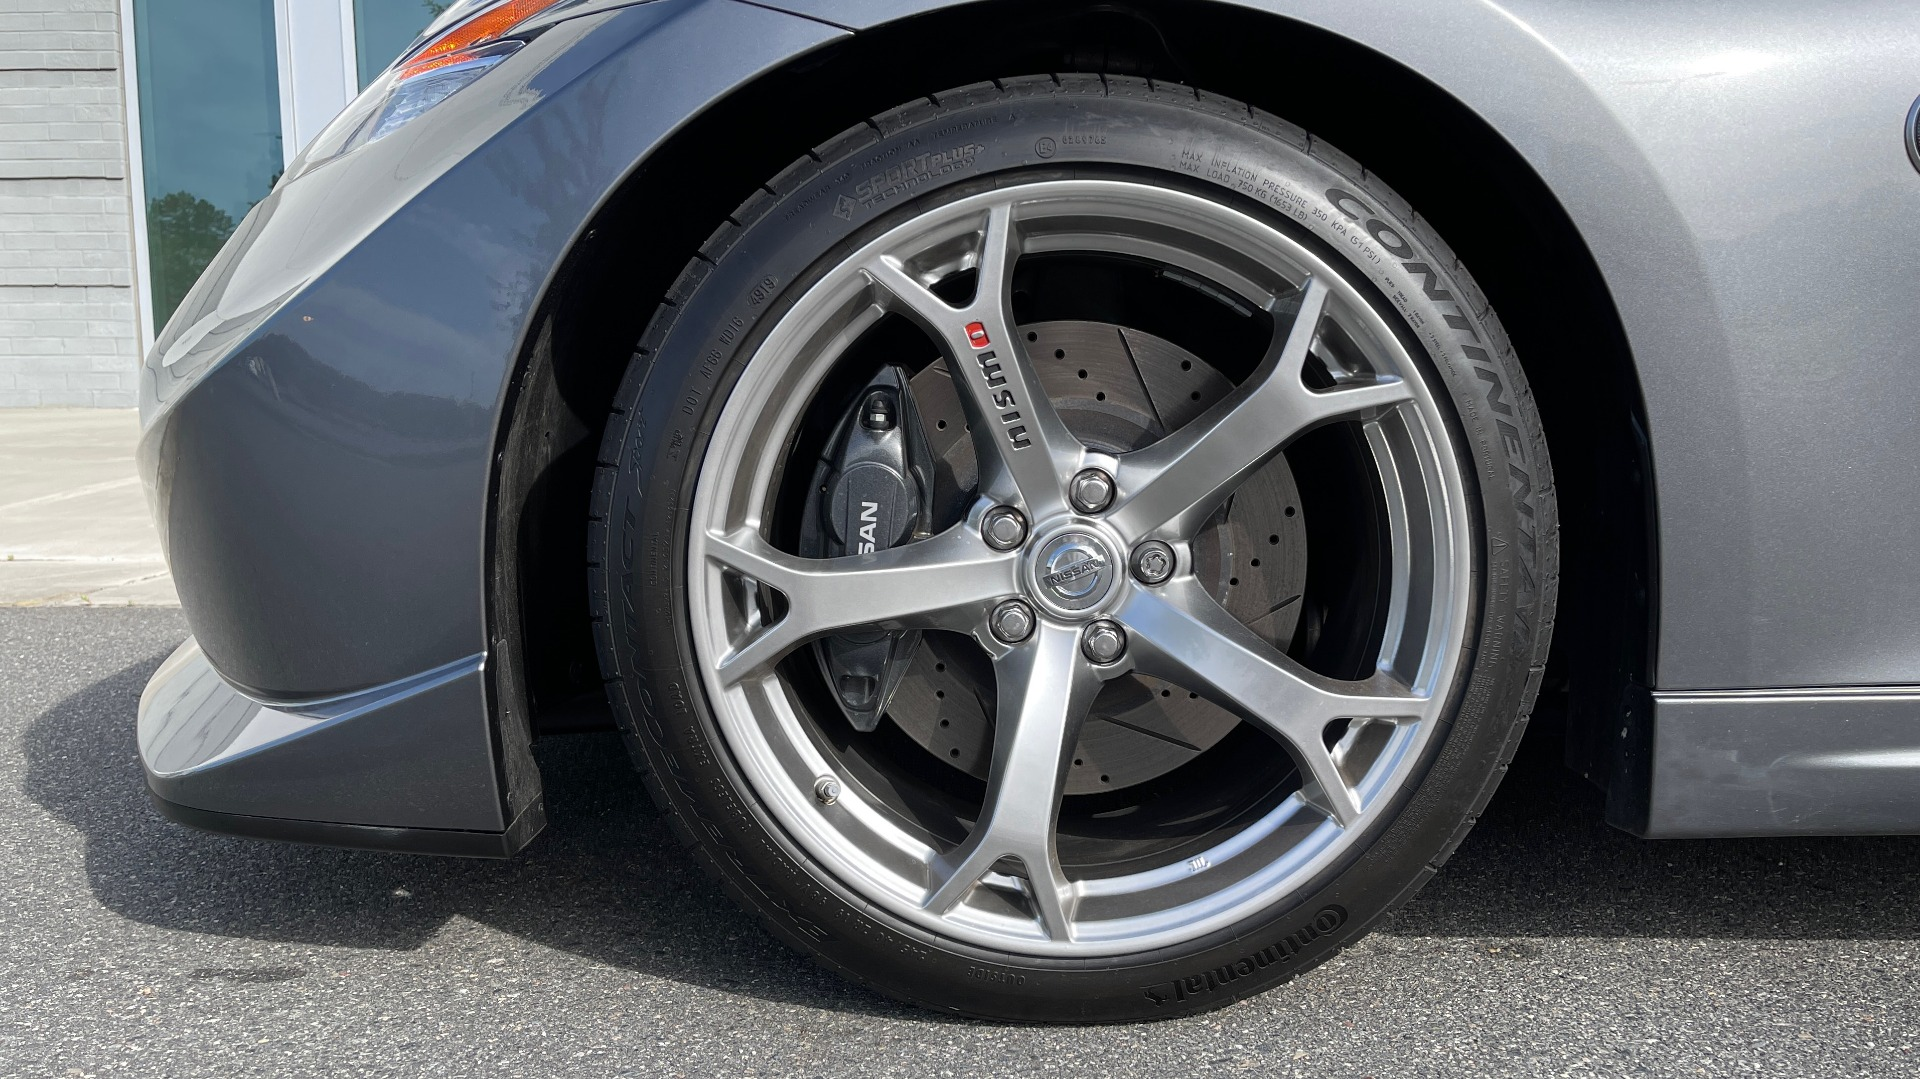 Used 2011 Nissan 370Z NISMO COUPE / 3.7L V6 / 6-SPD MAN / AUTO CLIMATE CONTROL for sale $32,995 at Formula Imports in Charlotte NC 28227 48